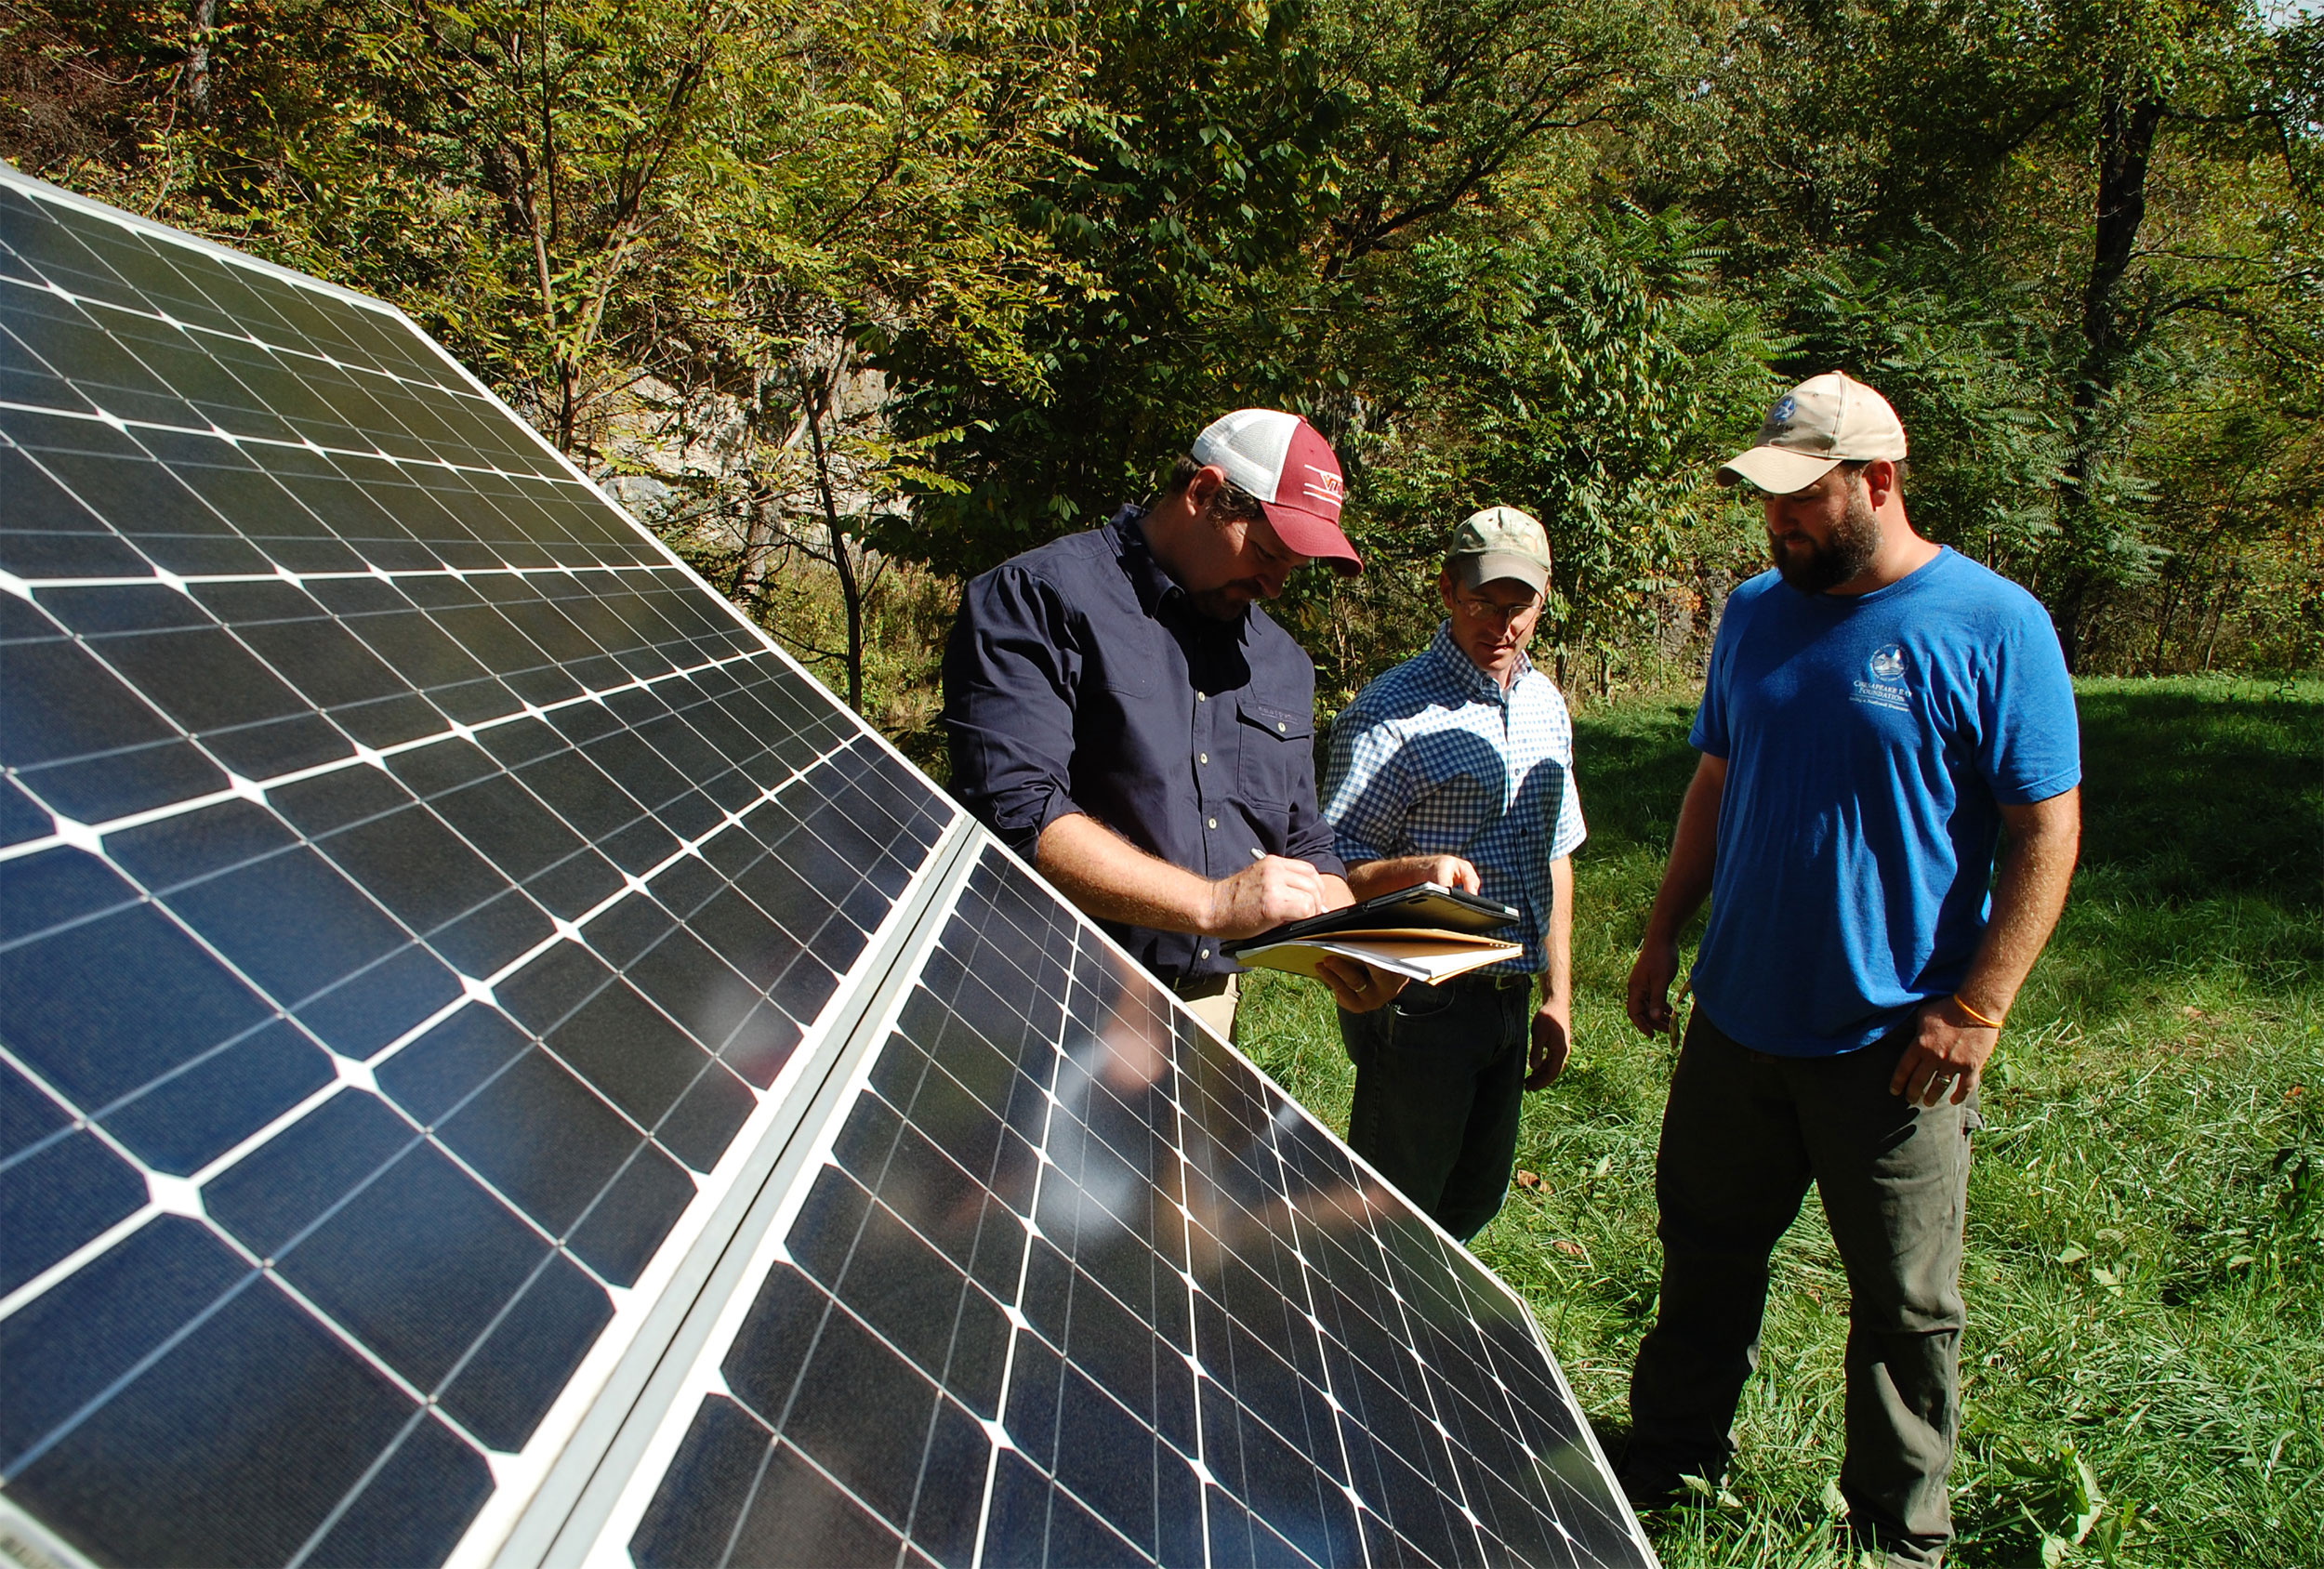 Extension Specialist John Ignosh and Extension Agent Matt Booher work with Alston Horn of the Chesapeake Bay Foundation to install solar-powered water stations that help protect the watershed. Photo by Kenny Fletcher, Chesapeake Bay Foundation.